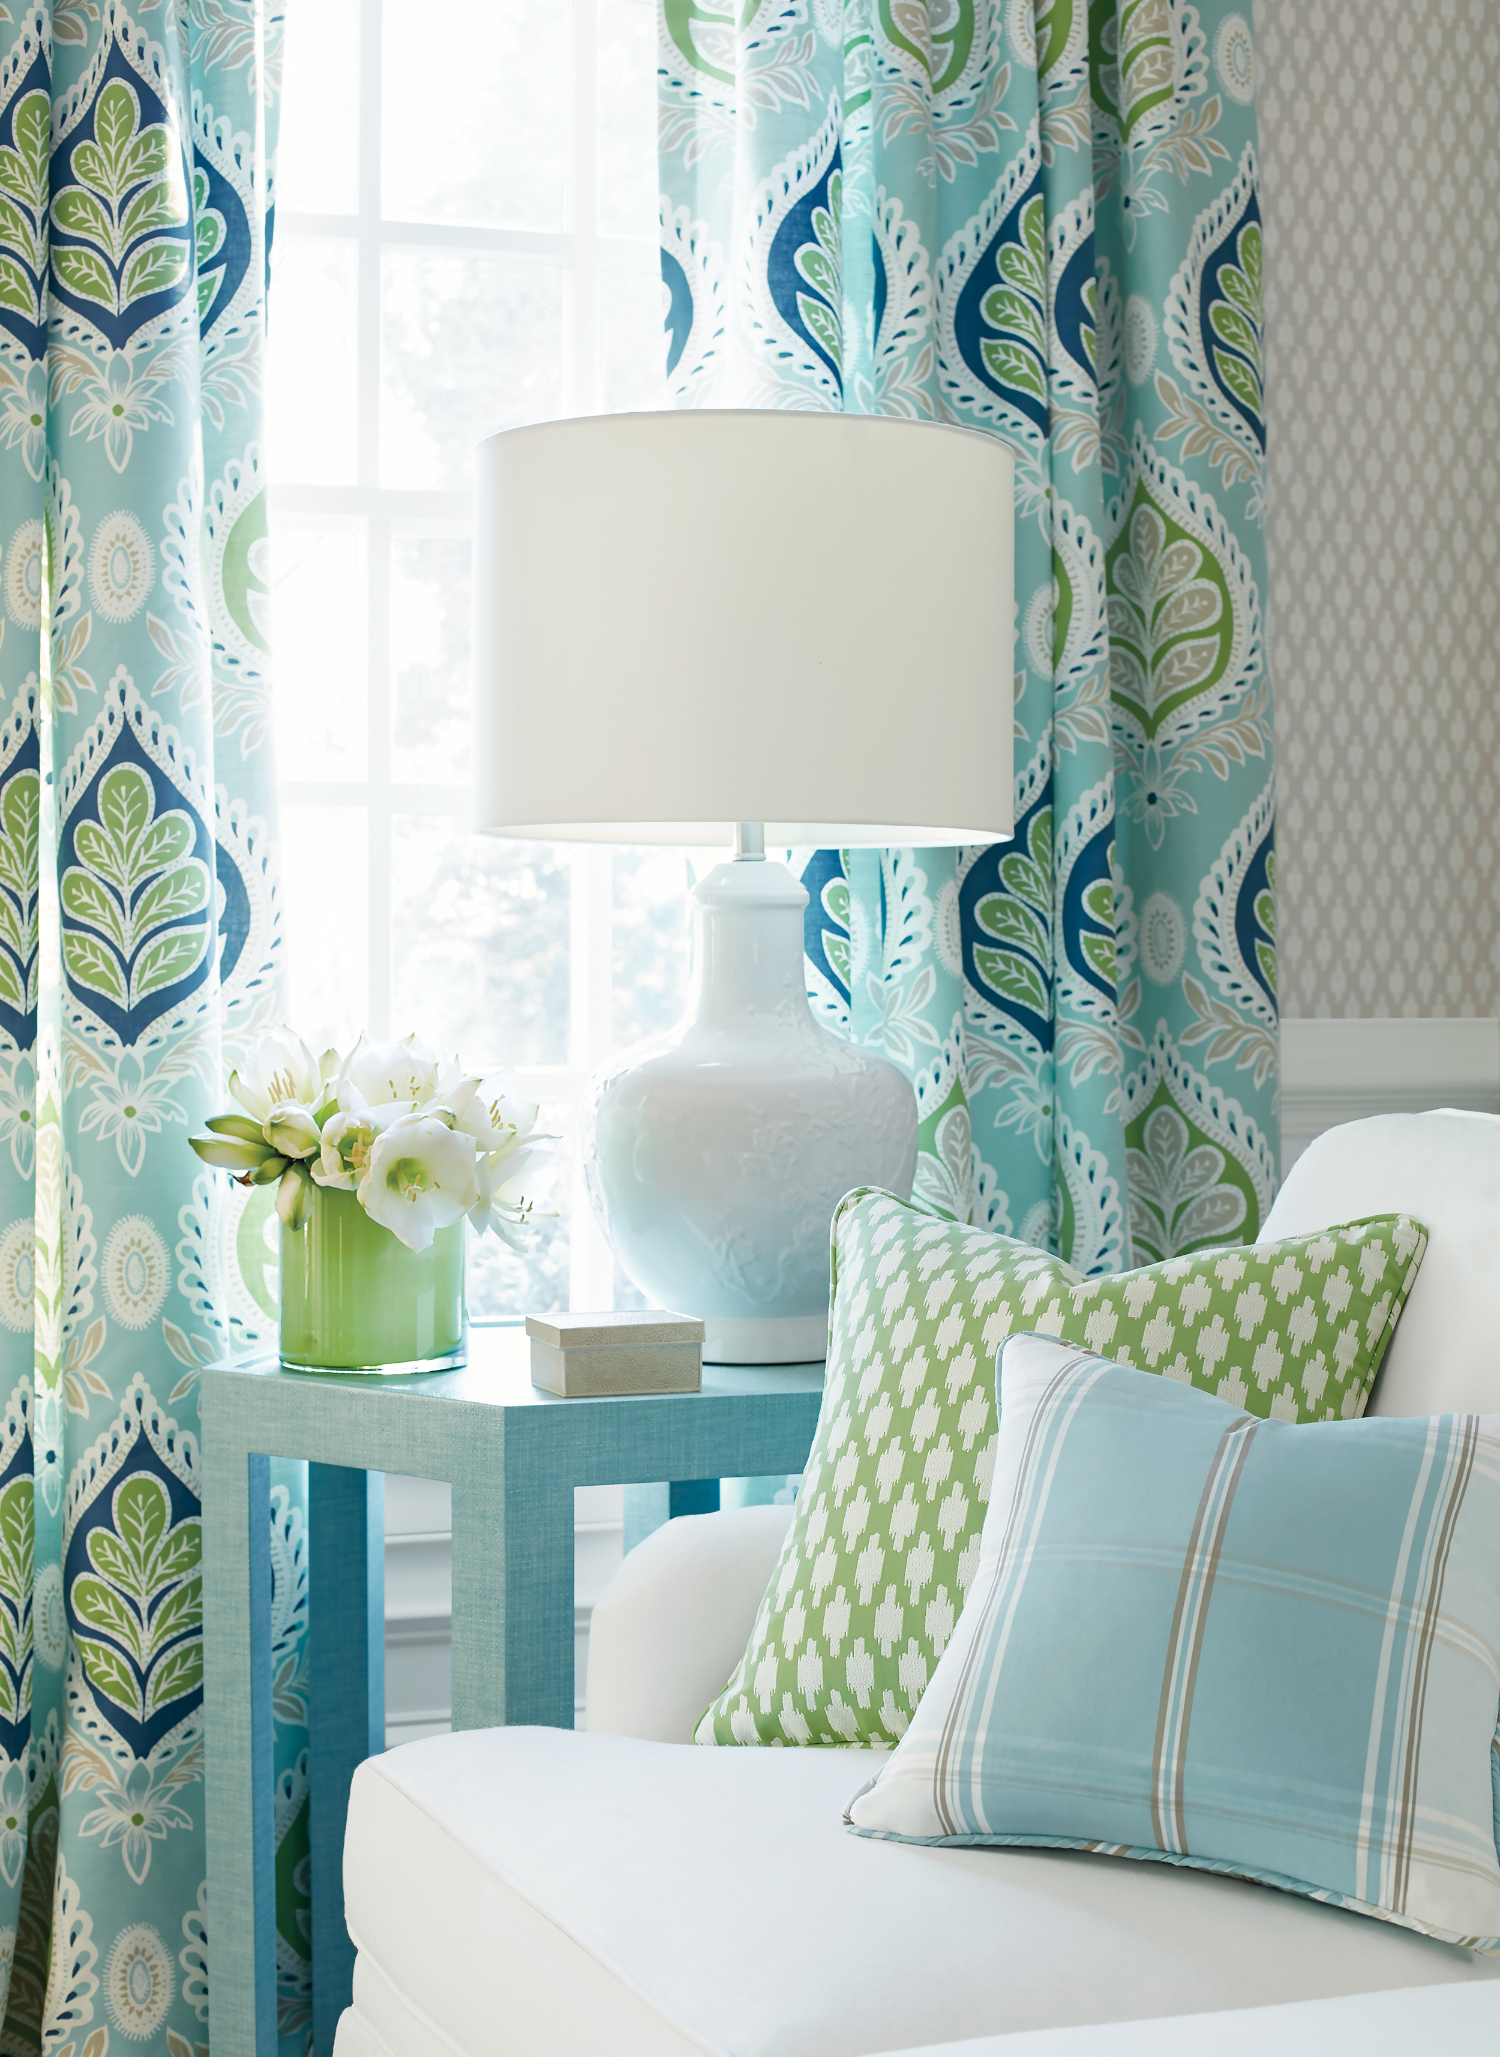 Try something new with color with this perky blue and green setting with a large-scale graphic pattern ( Midland ) that has a leaf-like motif and gives a nod to old Federal style wallpaper. The wallcovering shown here is  Troy , a small-scale texture with characteristics of a basket-weave. Photo credit: Courtesy of Thibaut. www.thibautdesign.com